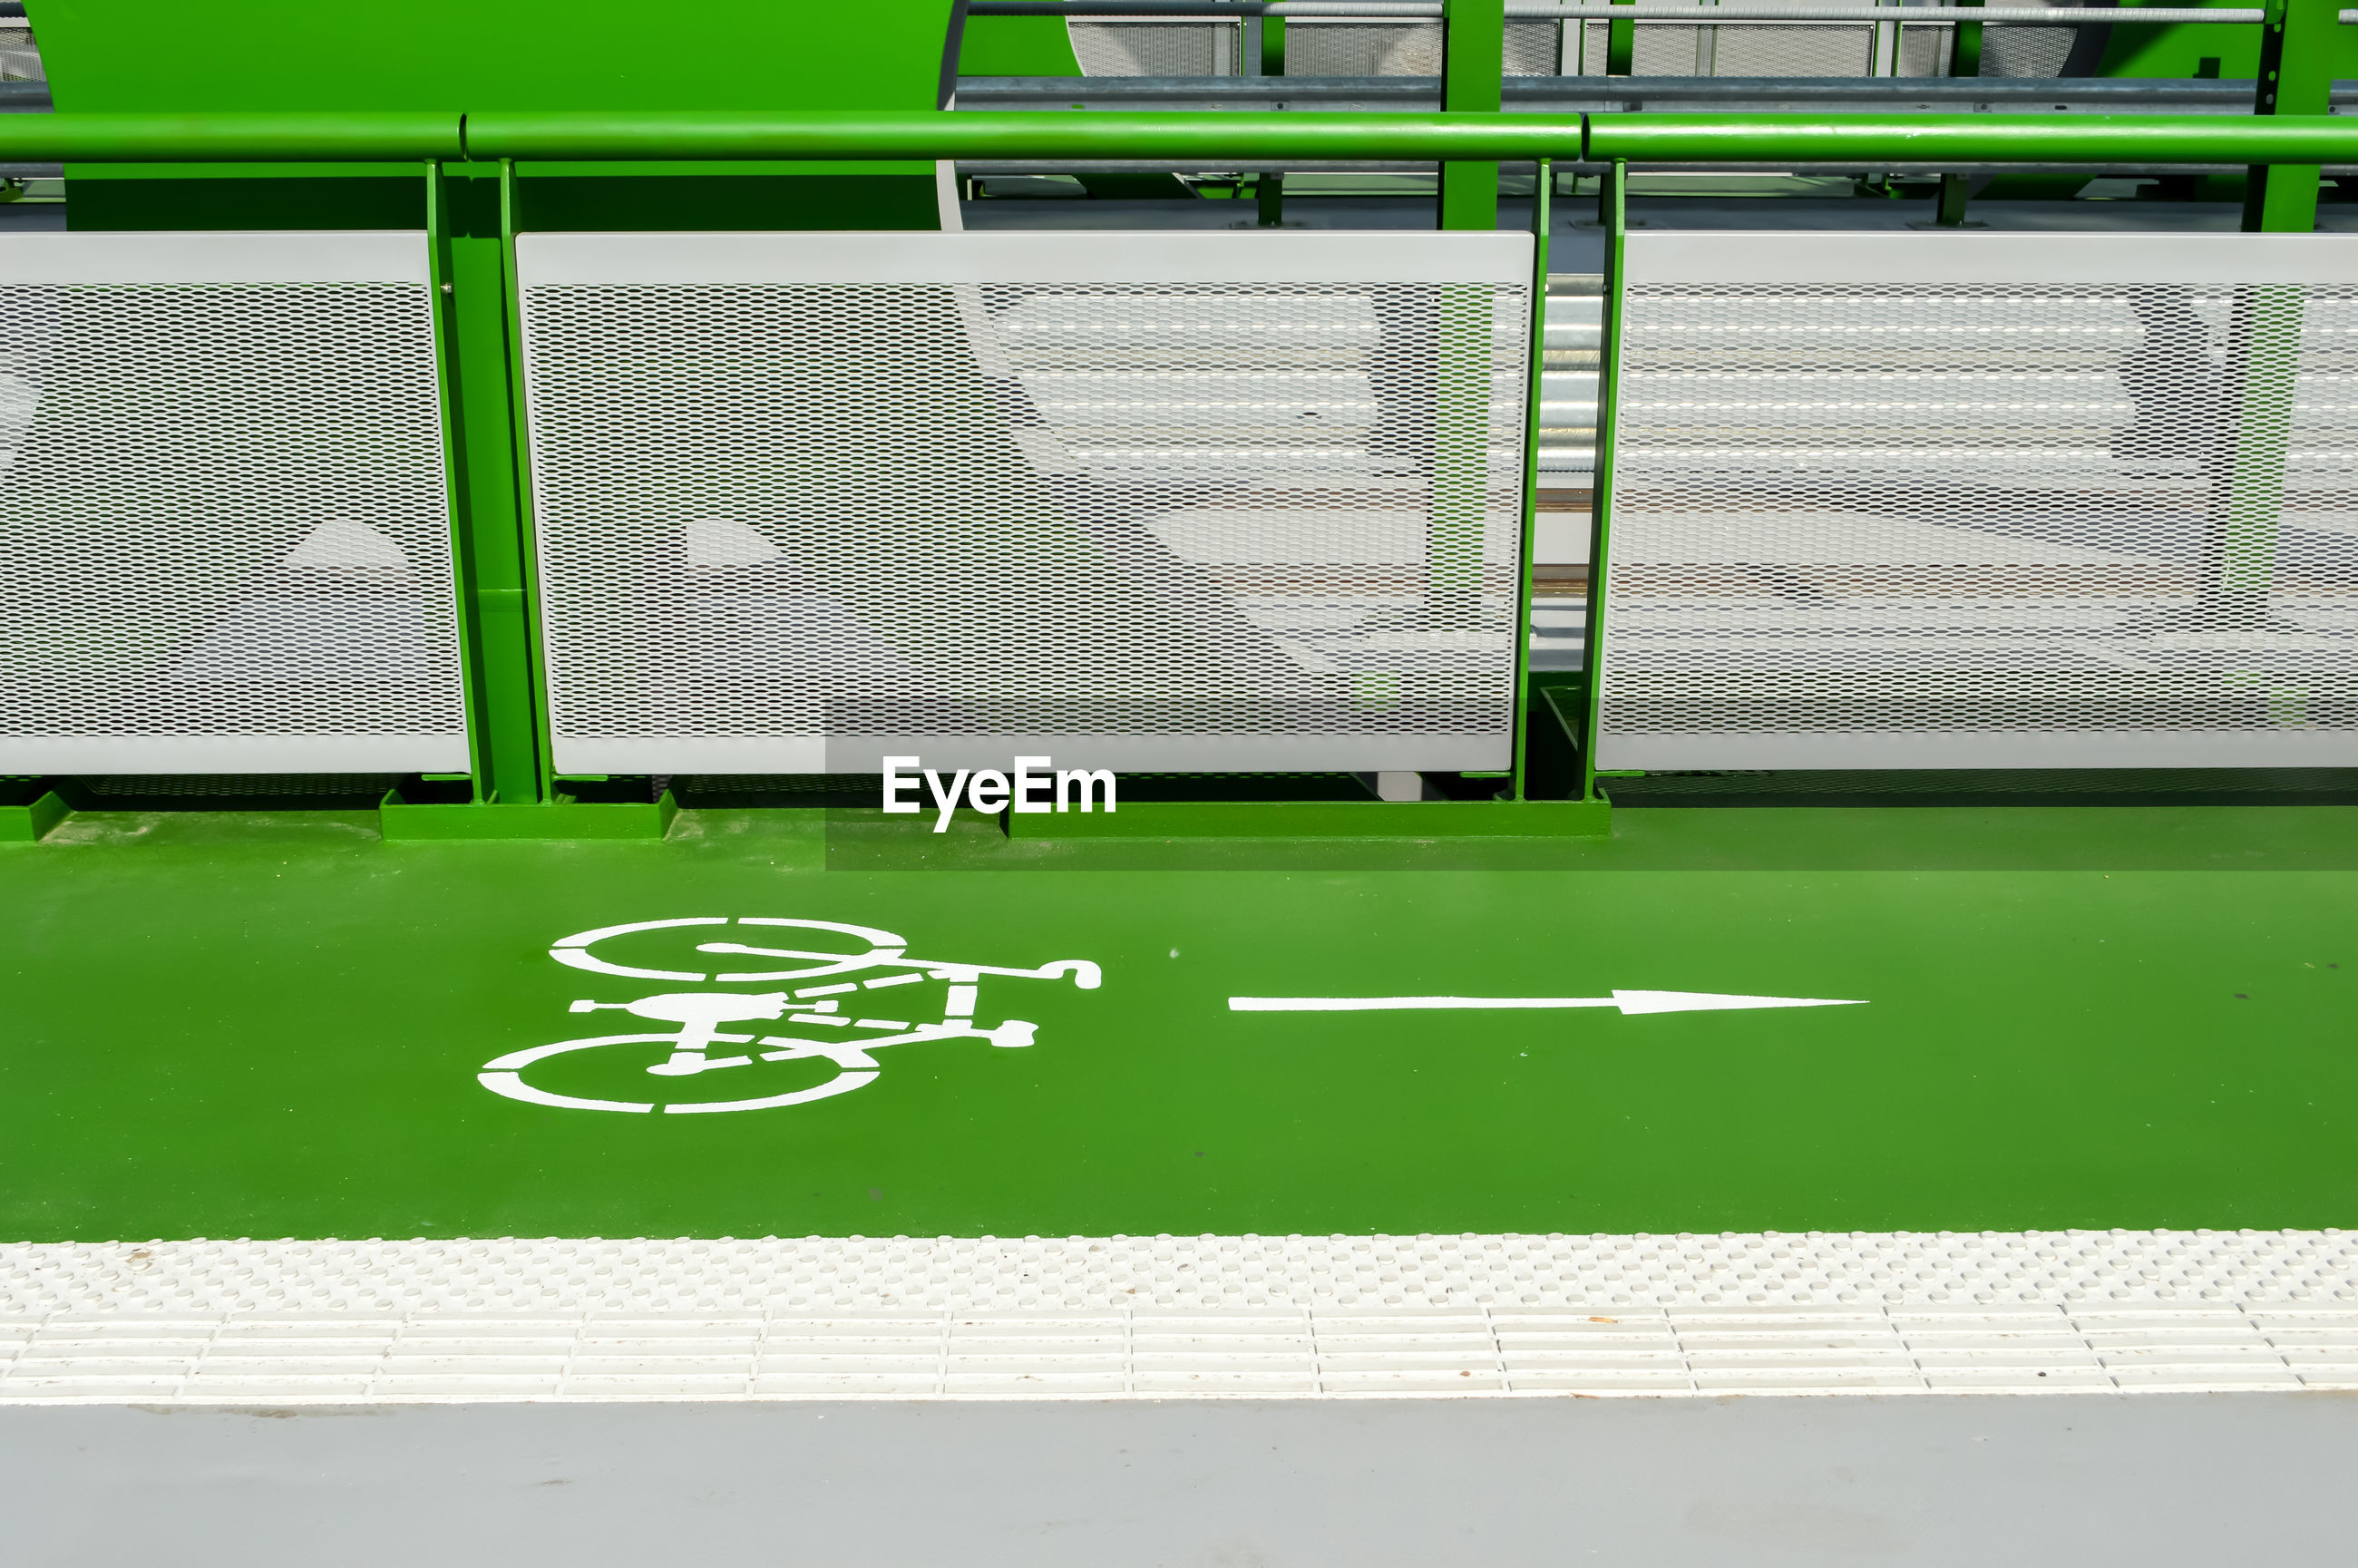 Bicycle lane on green road by railing